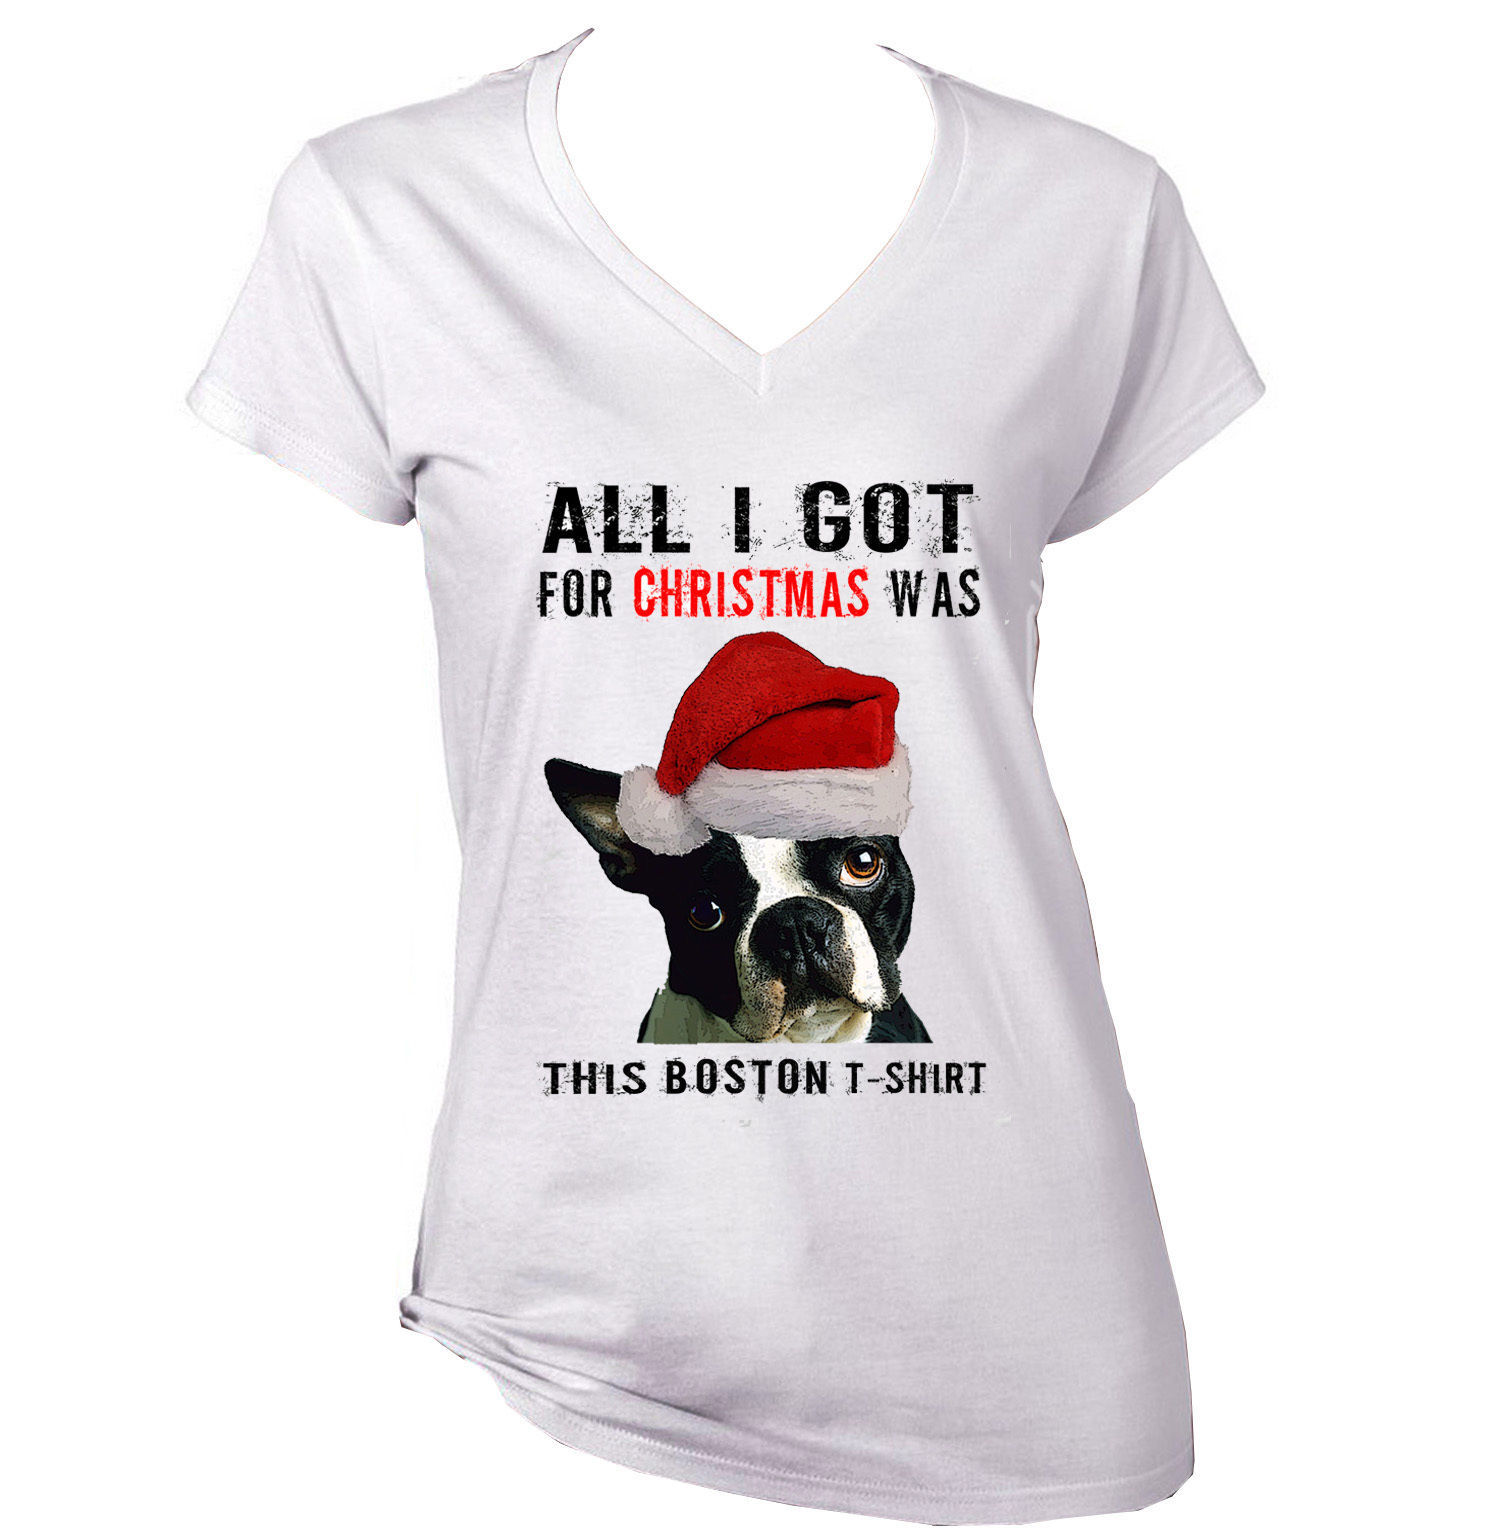 ALL I GOT FOR CHRISTMAS- BOSTON TERRIER TSHIRT  - NEW WHITE COTTON LADY TSHIRT